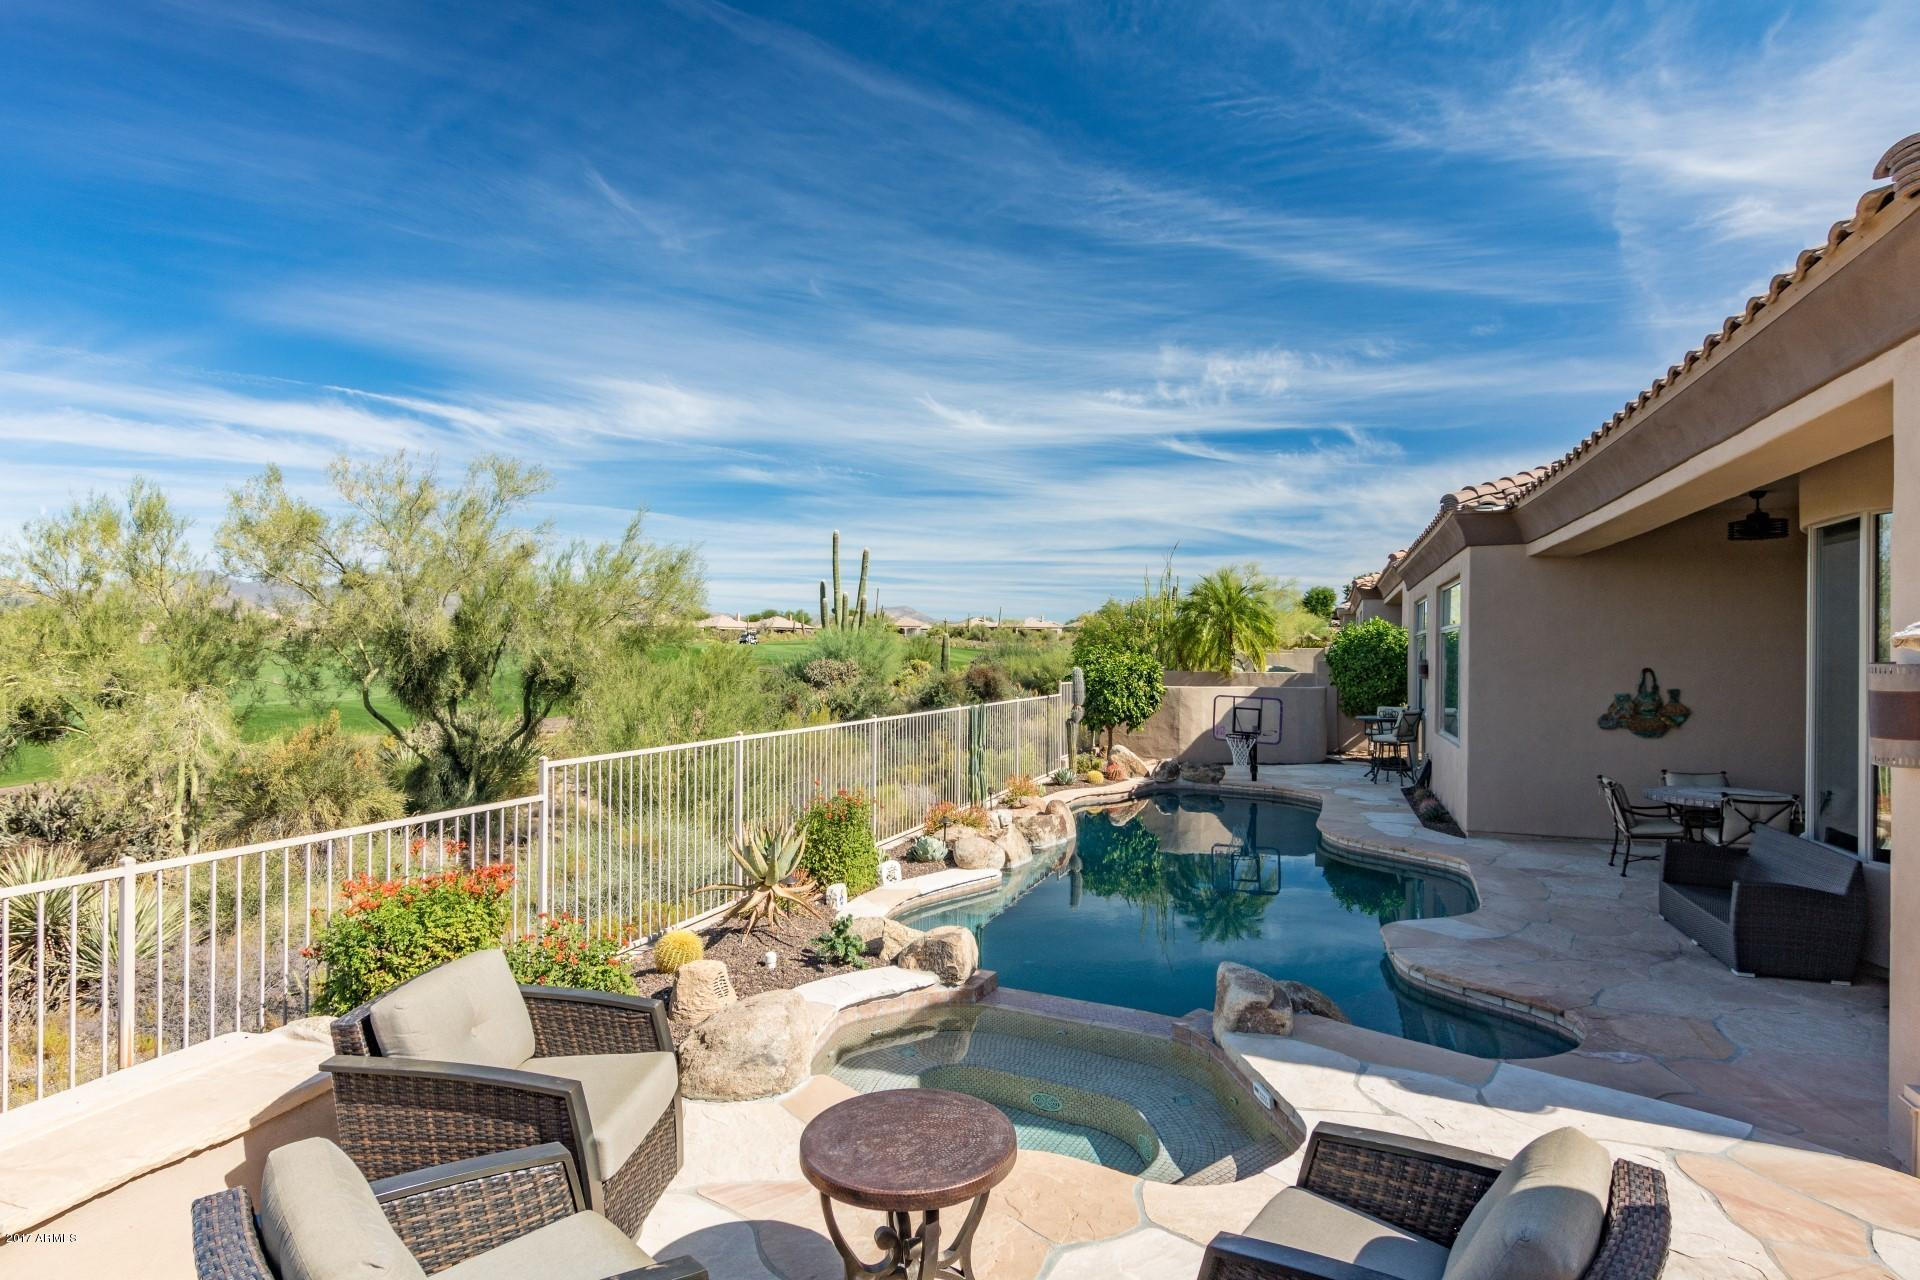 9426 E CAVALRY Drive, Scottsdale, AZ 85262, 3 Bedrooms Bedrooms, ,Residential Lease,For Rent,9426 E CAVALRY Drive,6179604